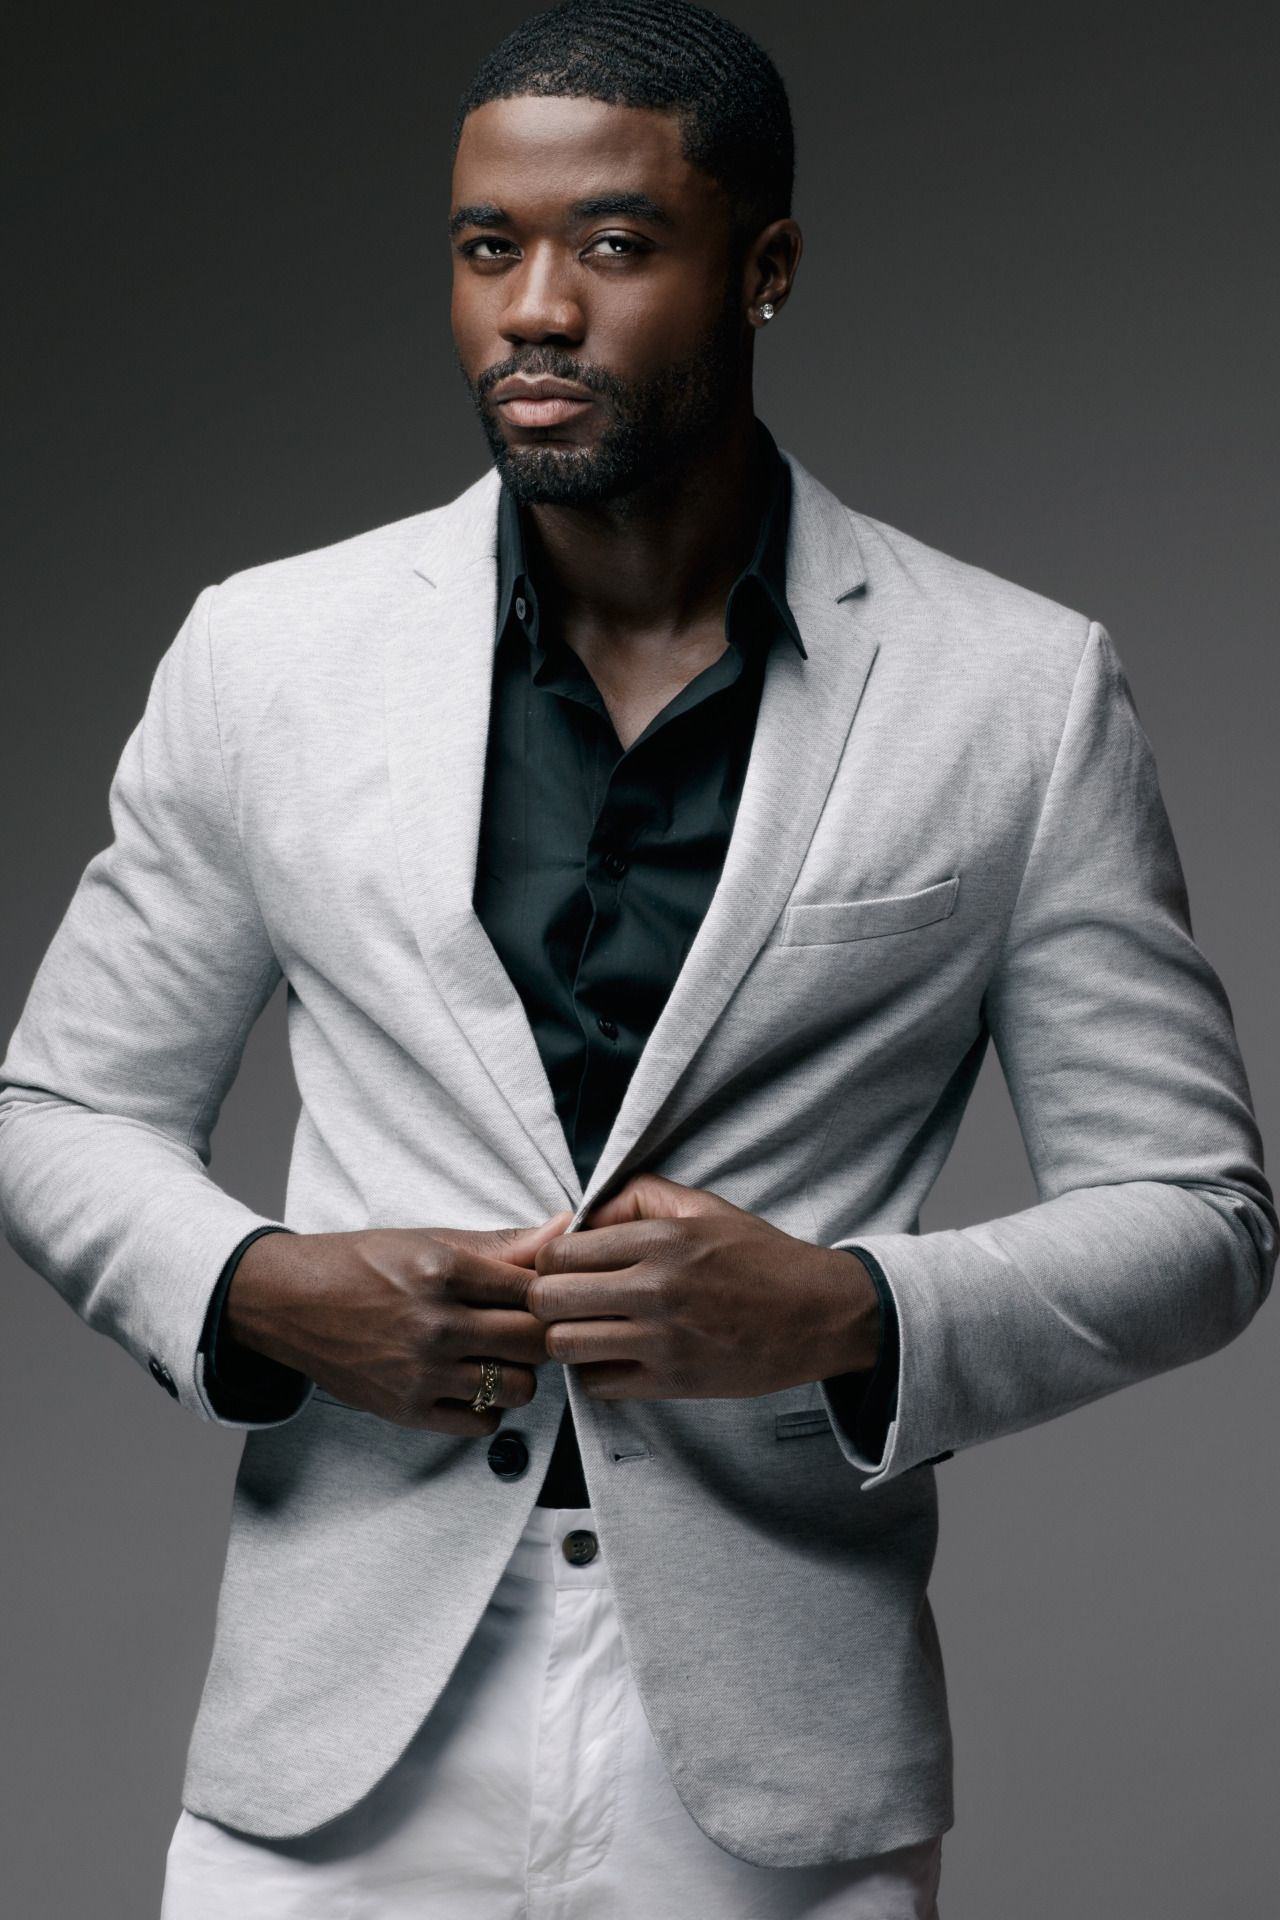 Beautiful black men images